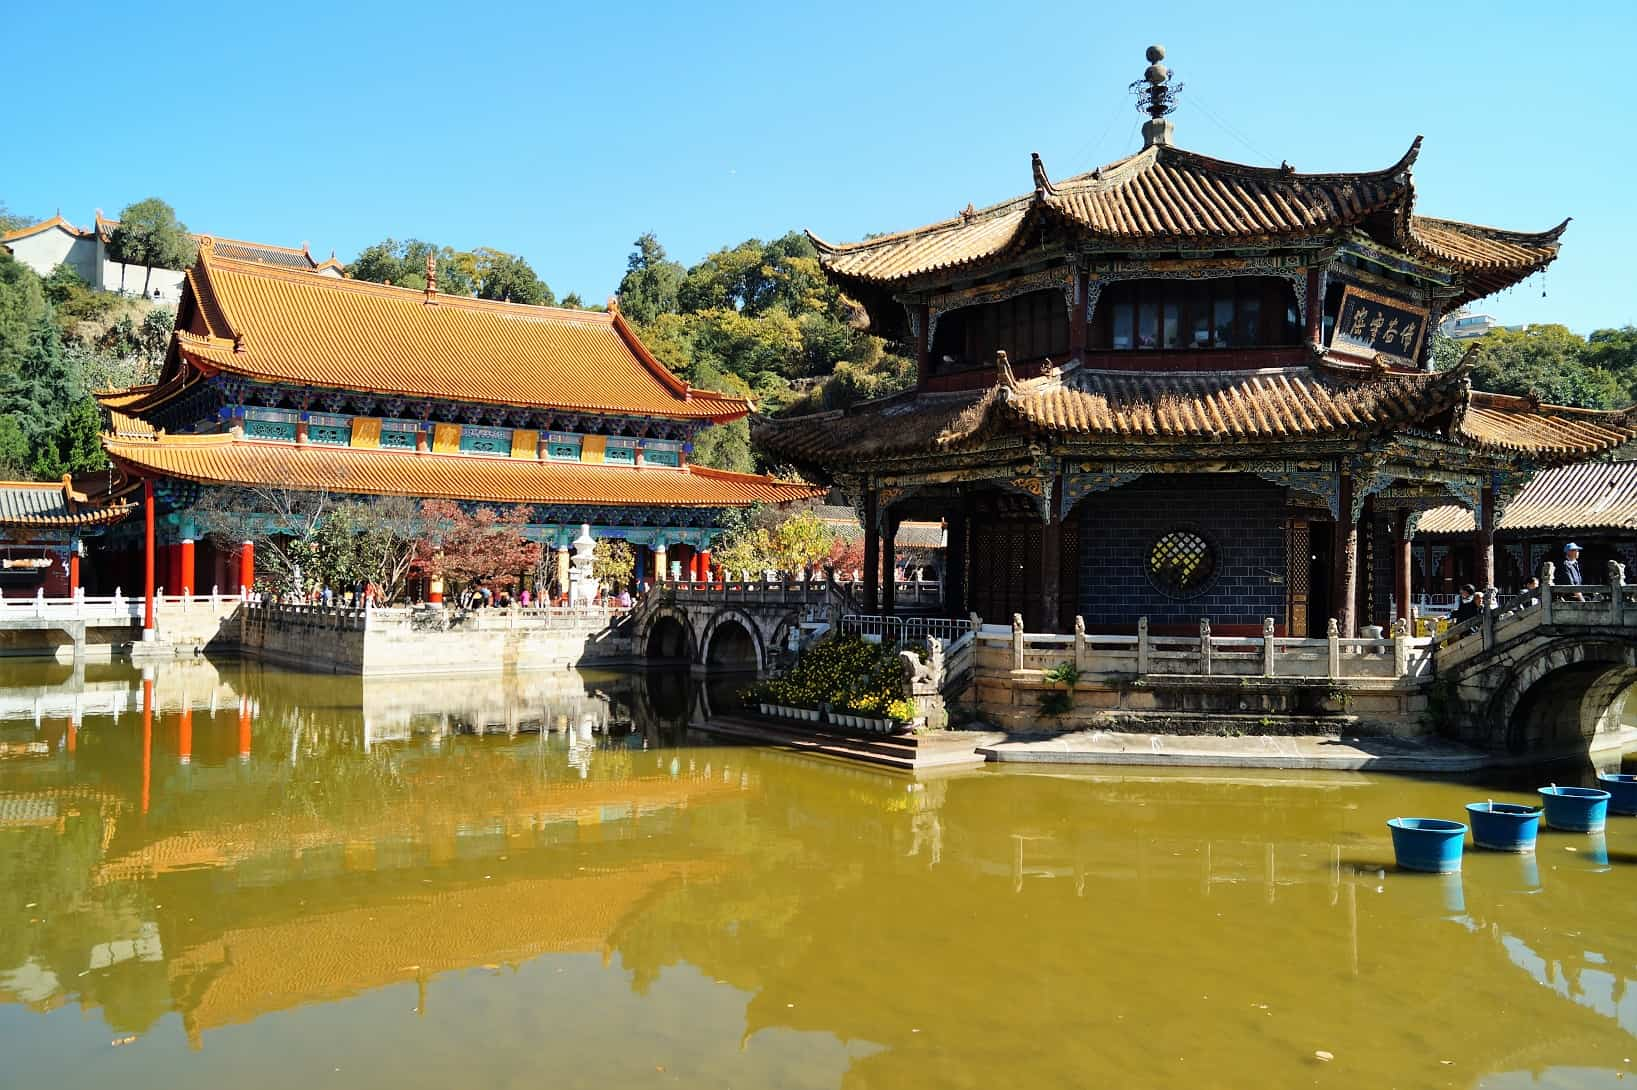 Kunming Yuantong Temple - Trip to Yunnan: 12 days in China with all included!